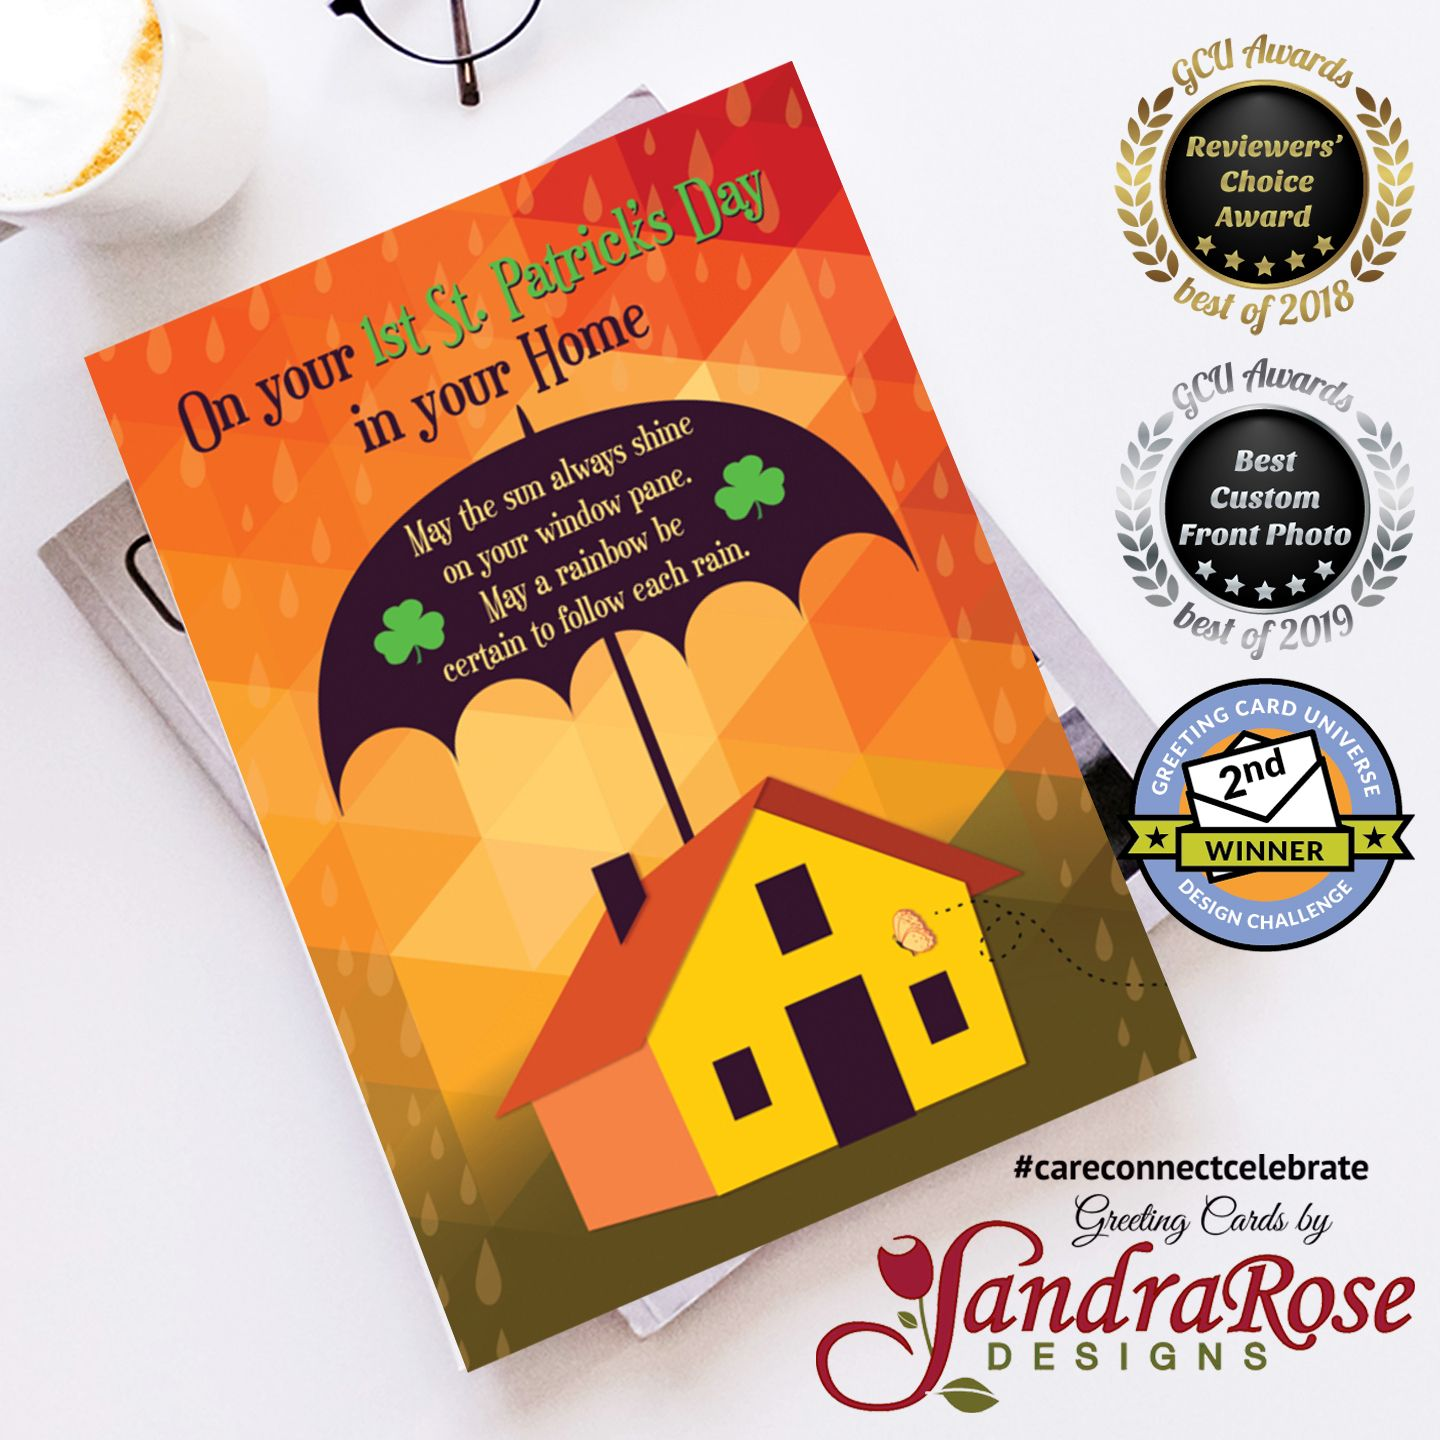 An Umbrella covers the home protecting it from the rain. A traditional Irish wish is written on the umbrella and is cute and fun to send on the First St. Patrick's Day in a new home.  #NewHome #Umbrella #Rain #Rainbow #First #StPatricksDay #StPatricks #SaintPatrick #SaintPatricksDay #CareConnectCelebrate #SandraRoseDesigns #Greetingcards #Greetingcard